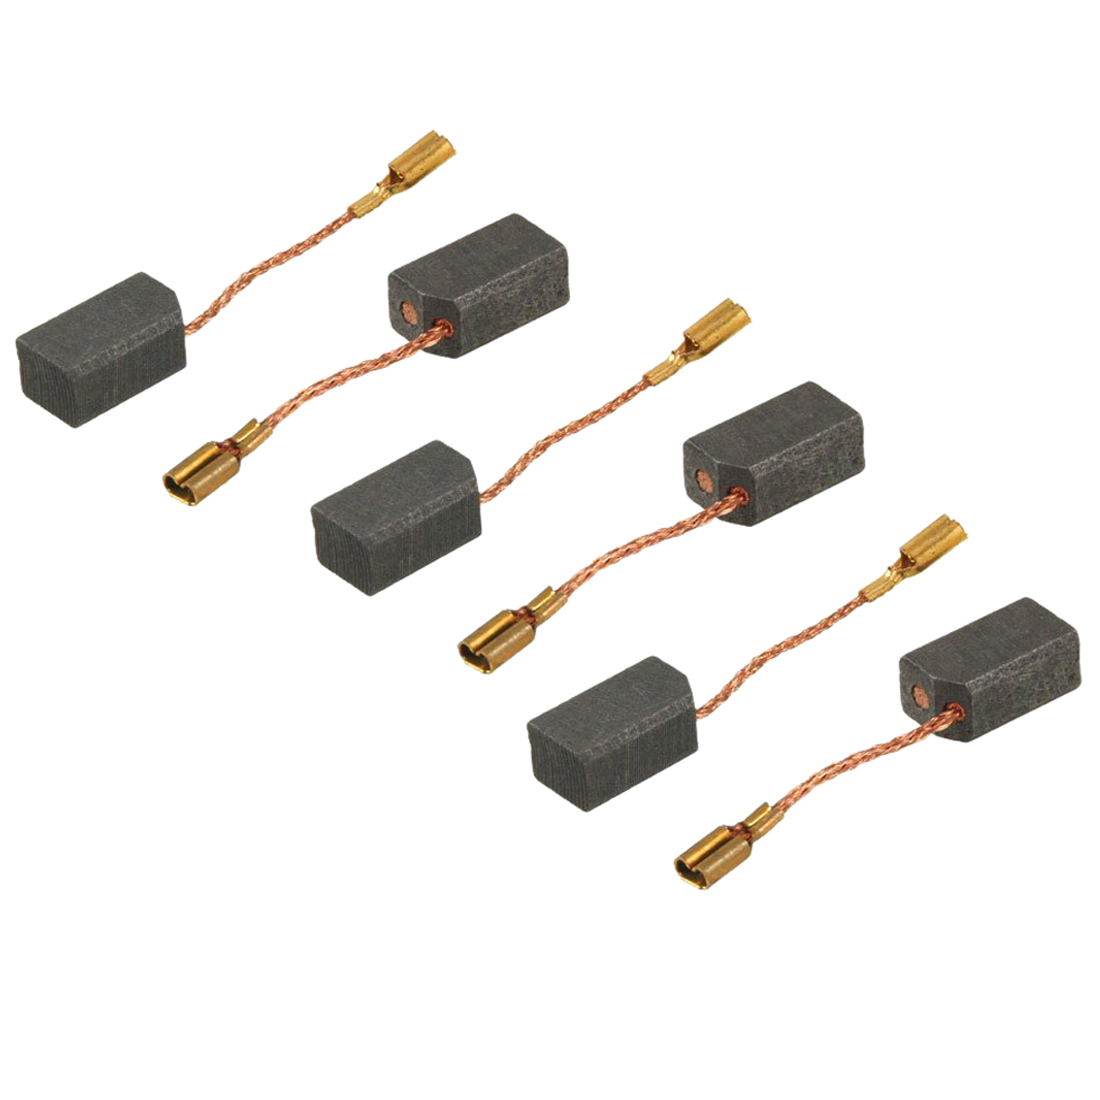 Replacement 6 7 13mm motor carbon brushes 5 pairs c4v4 for Dc motor brushes function